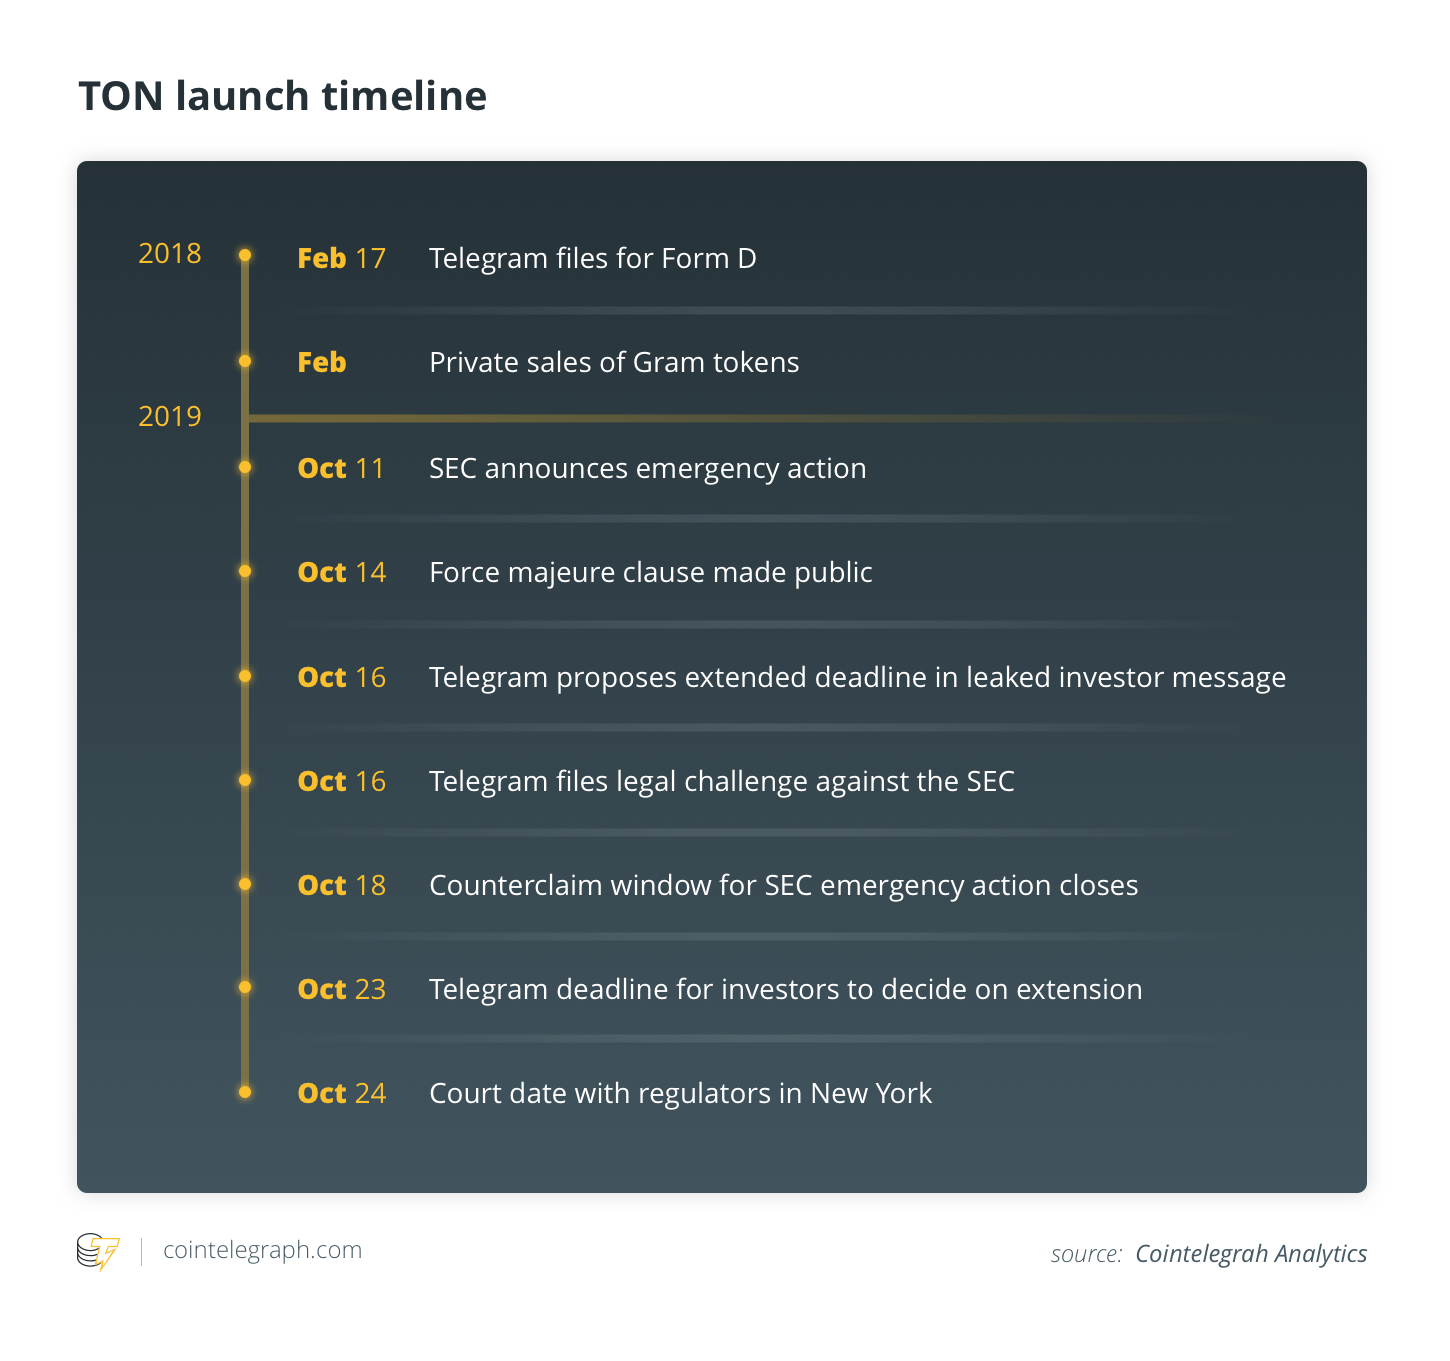 TON launch timeline